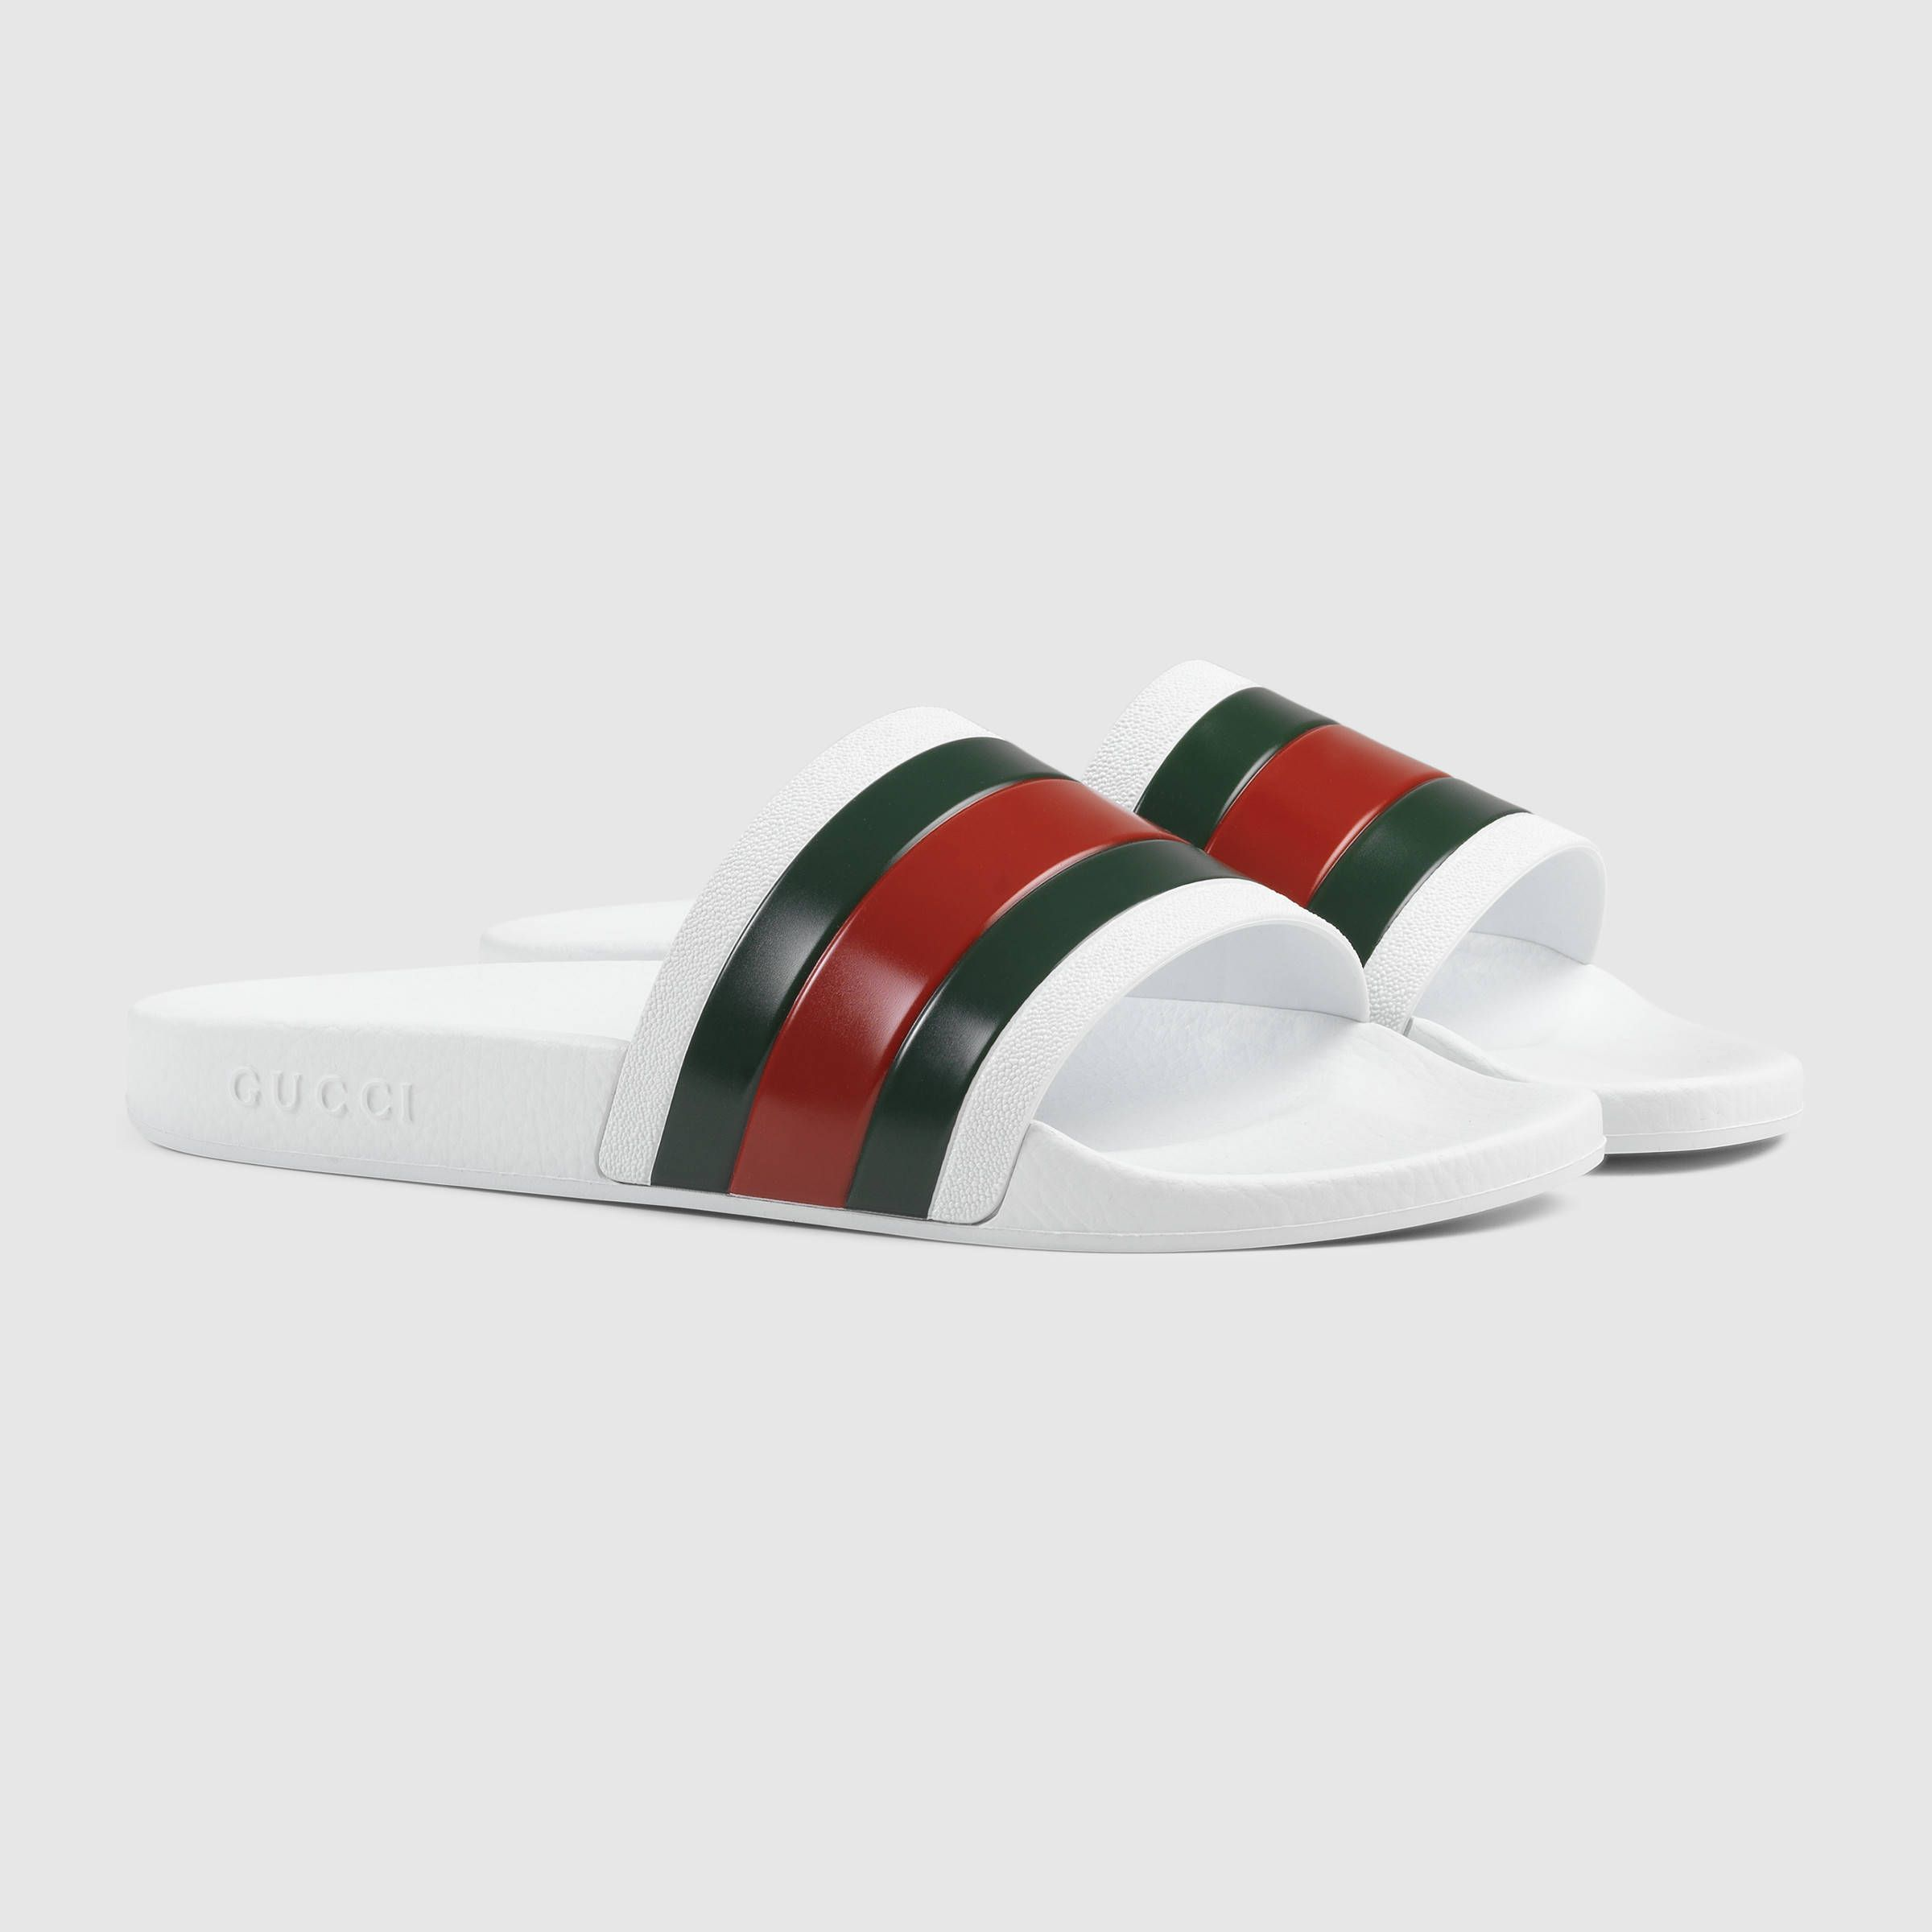 30604f8fb68d Gucci Men - Rubber slide sandal -  160